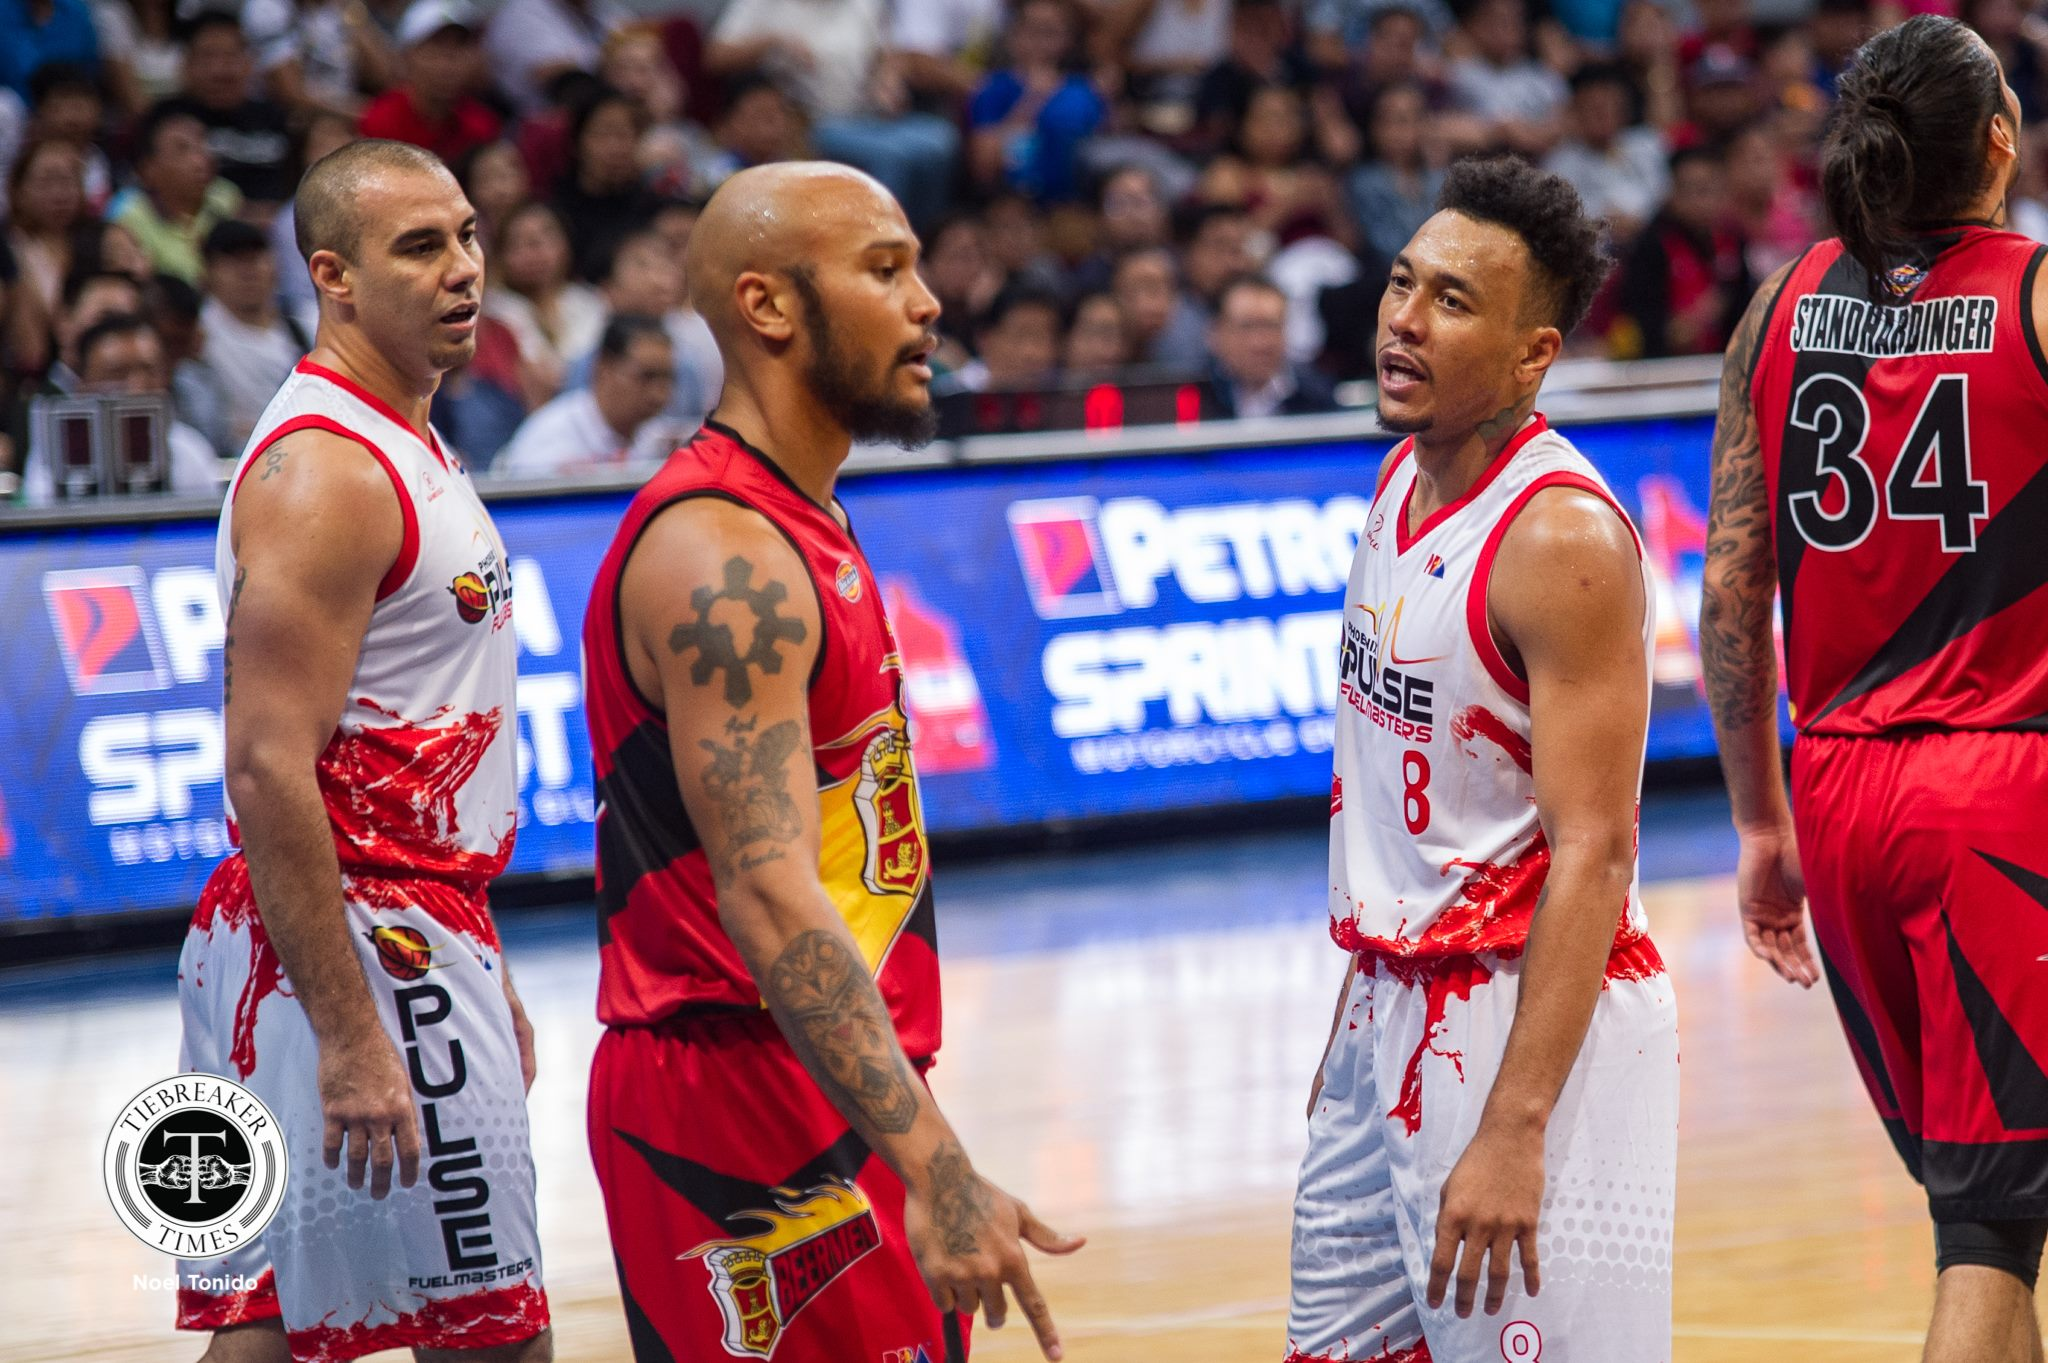 Tiebreaker Times Abueva seeks clearance from GAB: 'Kailangan bigyan ng linaw kasi vina-violate yung right niya' Basketball News PBA  Phoenix Fuel Masters PBA Season 44 Louie Alas Games and Amusement Board Calvin Abueva 2019 PBA Commissioners Cup